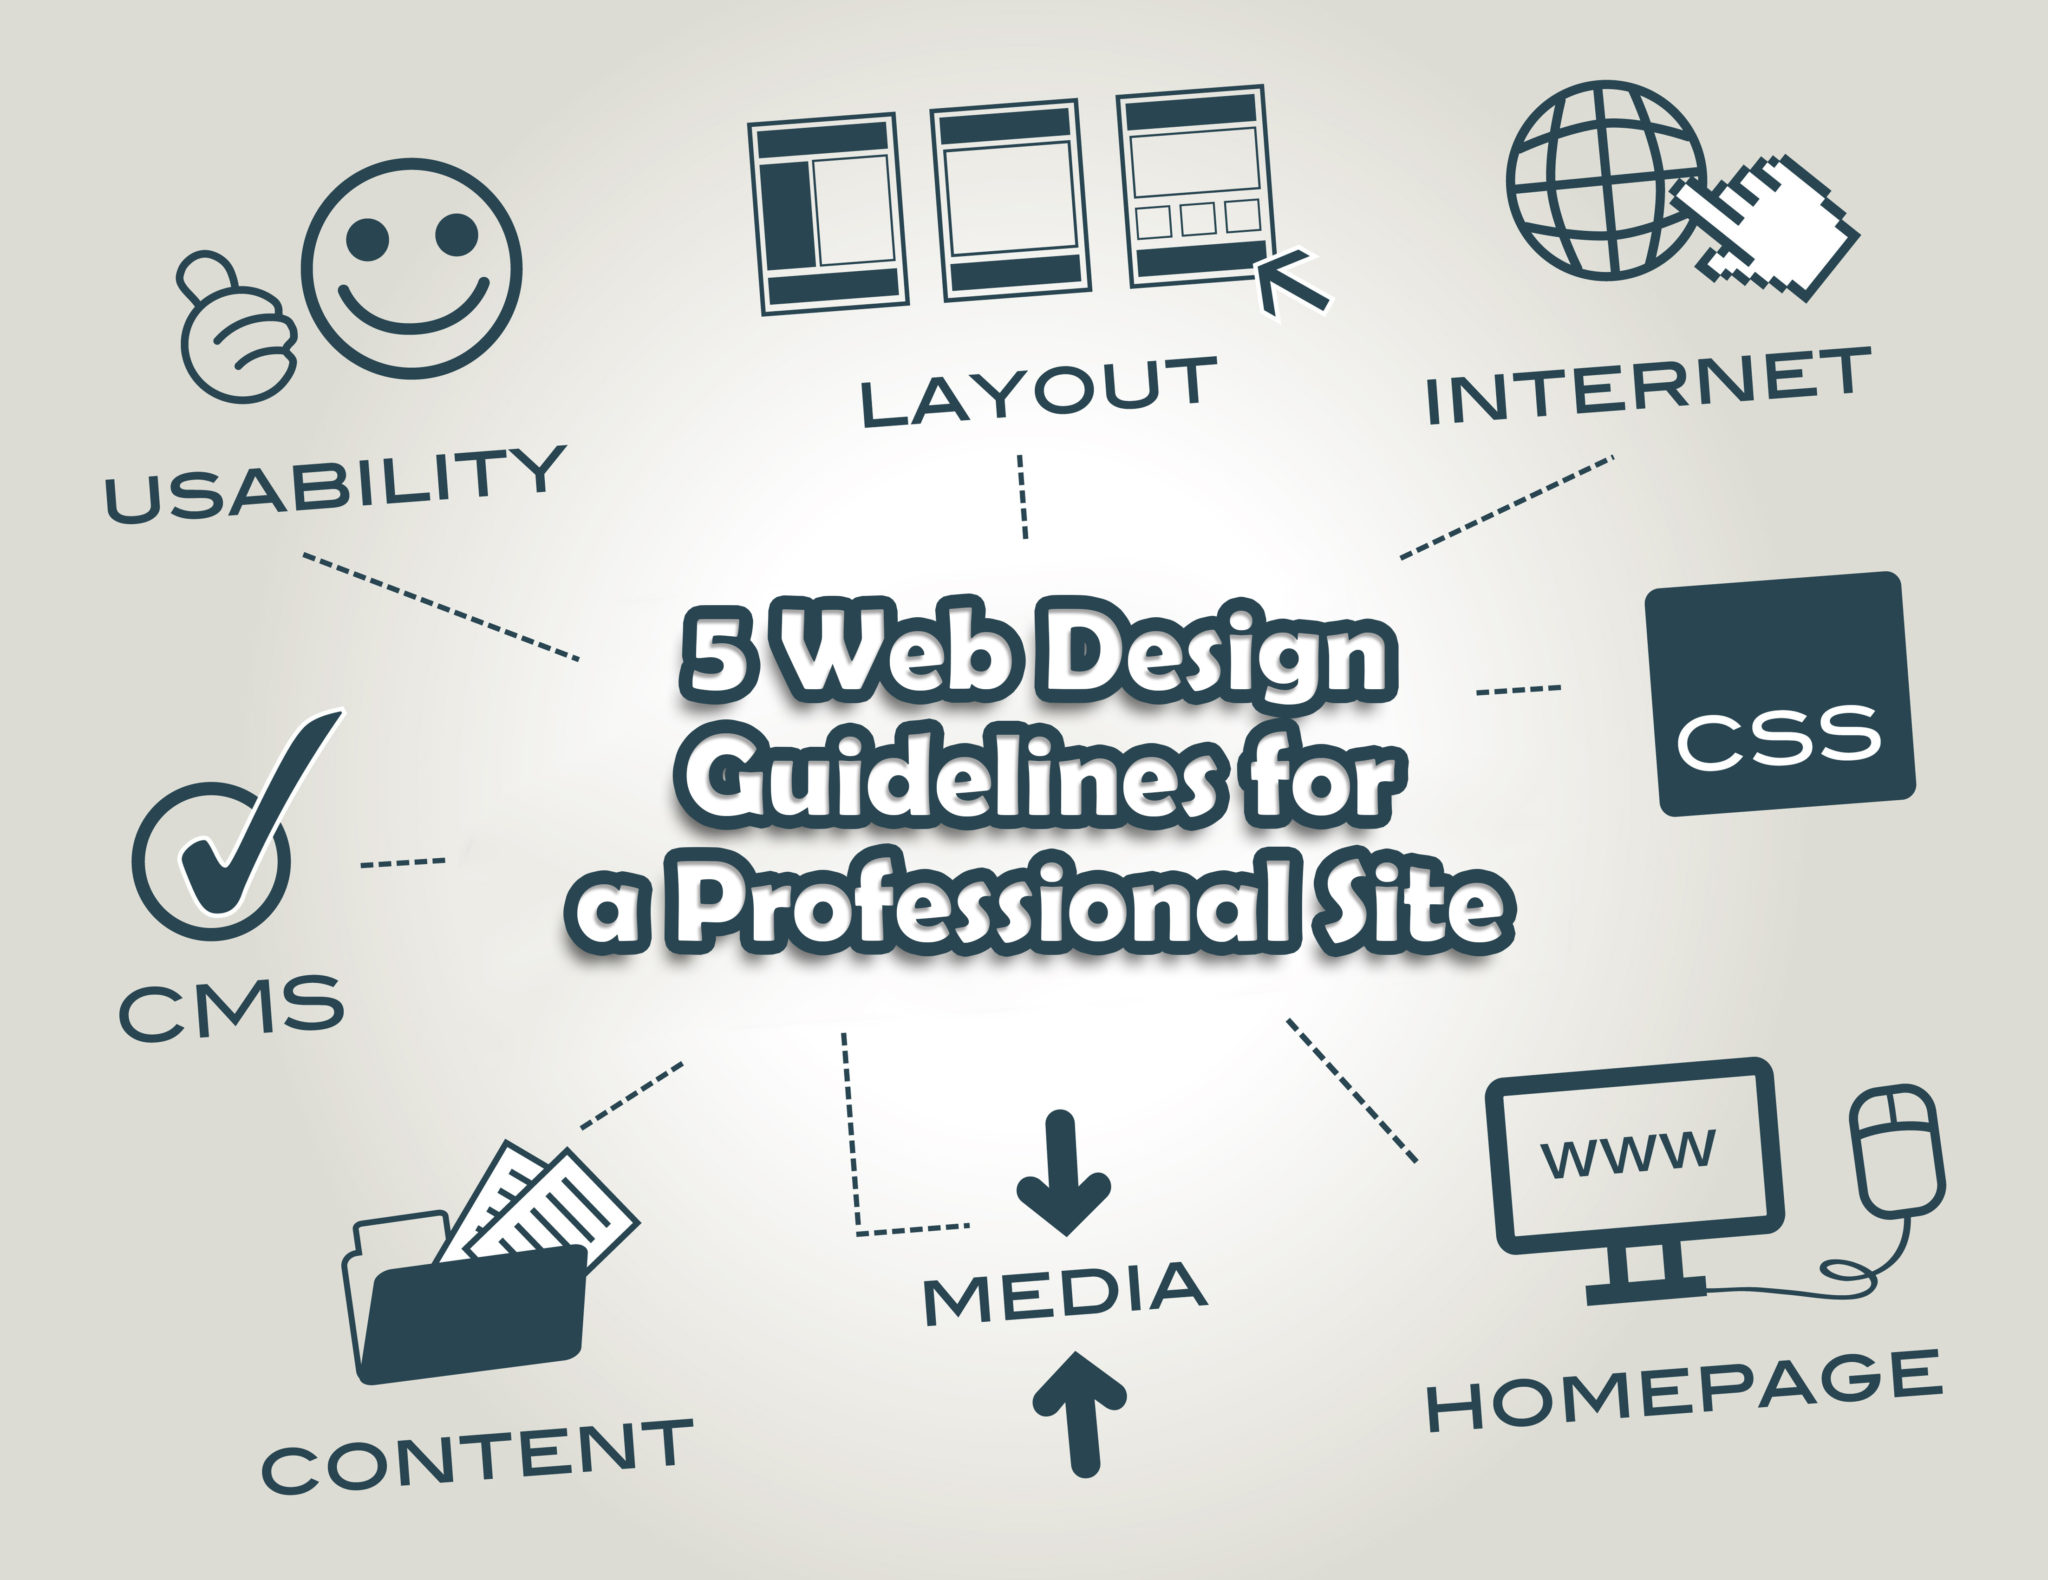 5 Web Design Guidelines for a Professional Site